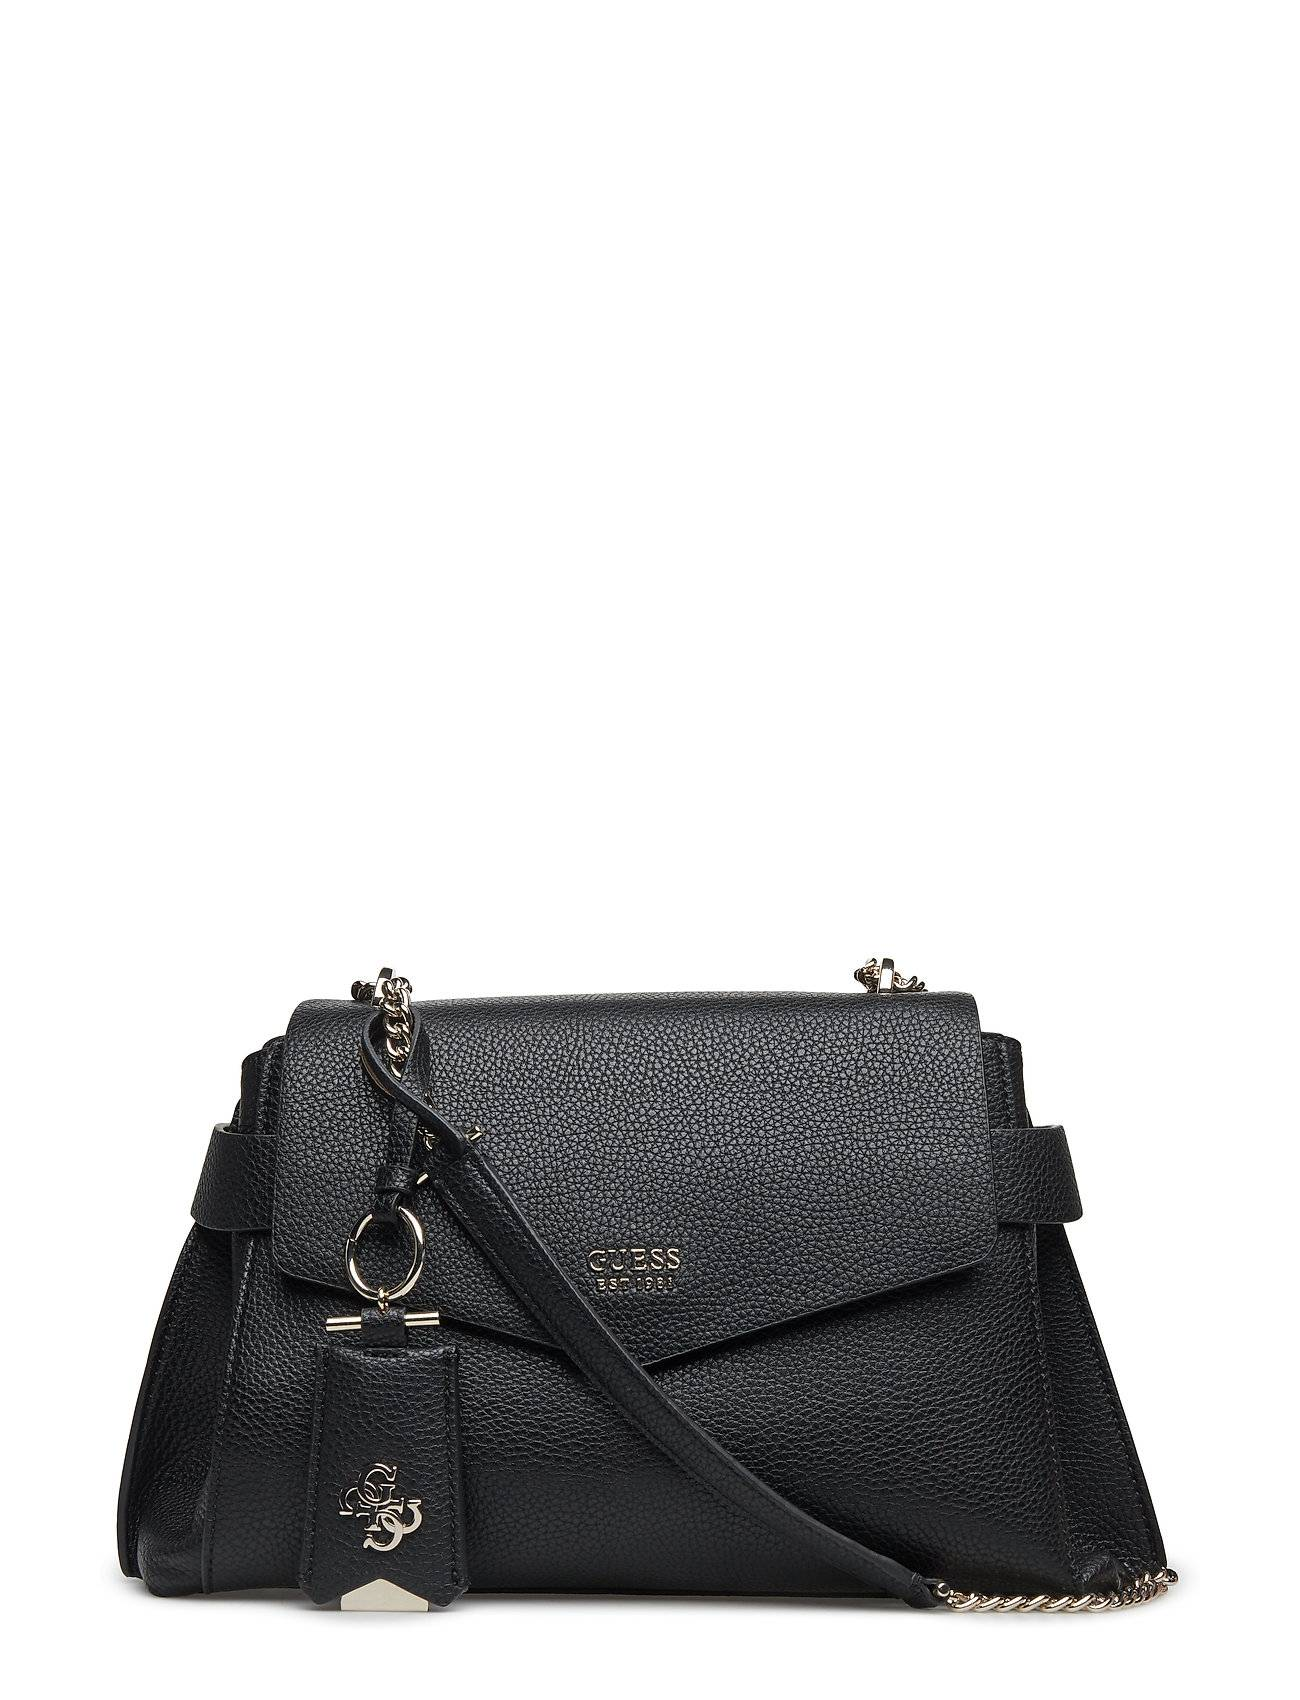 GUESS Colette Shoulder Bag